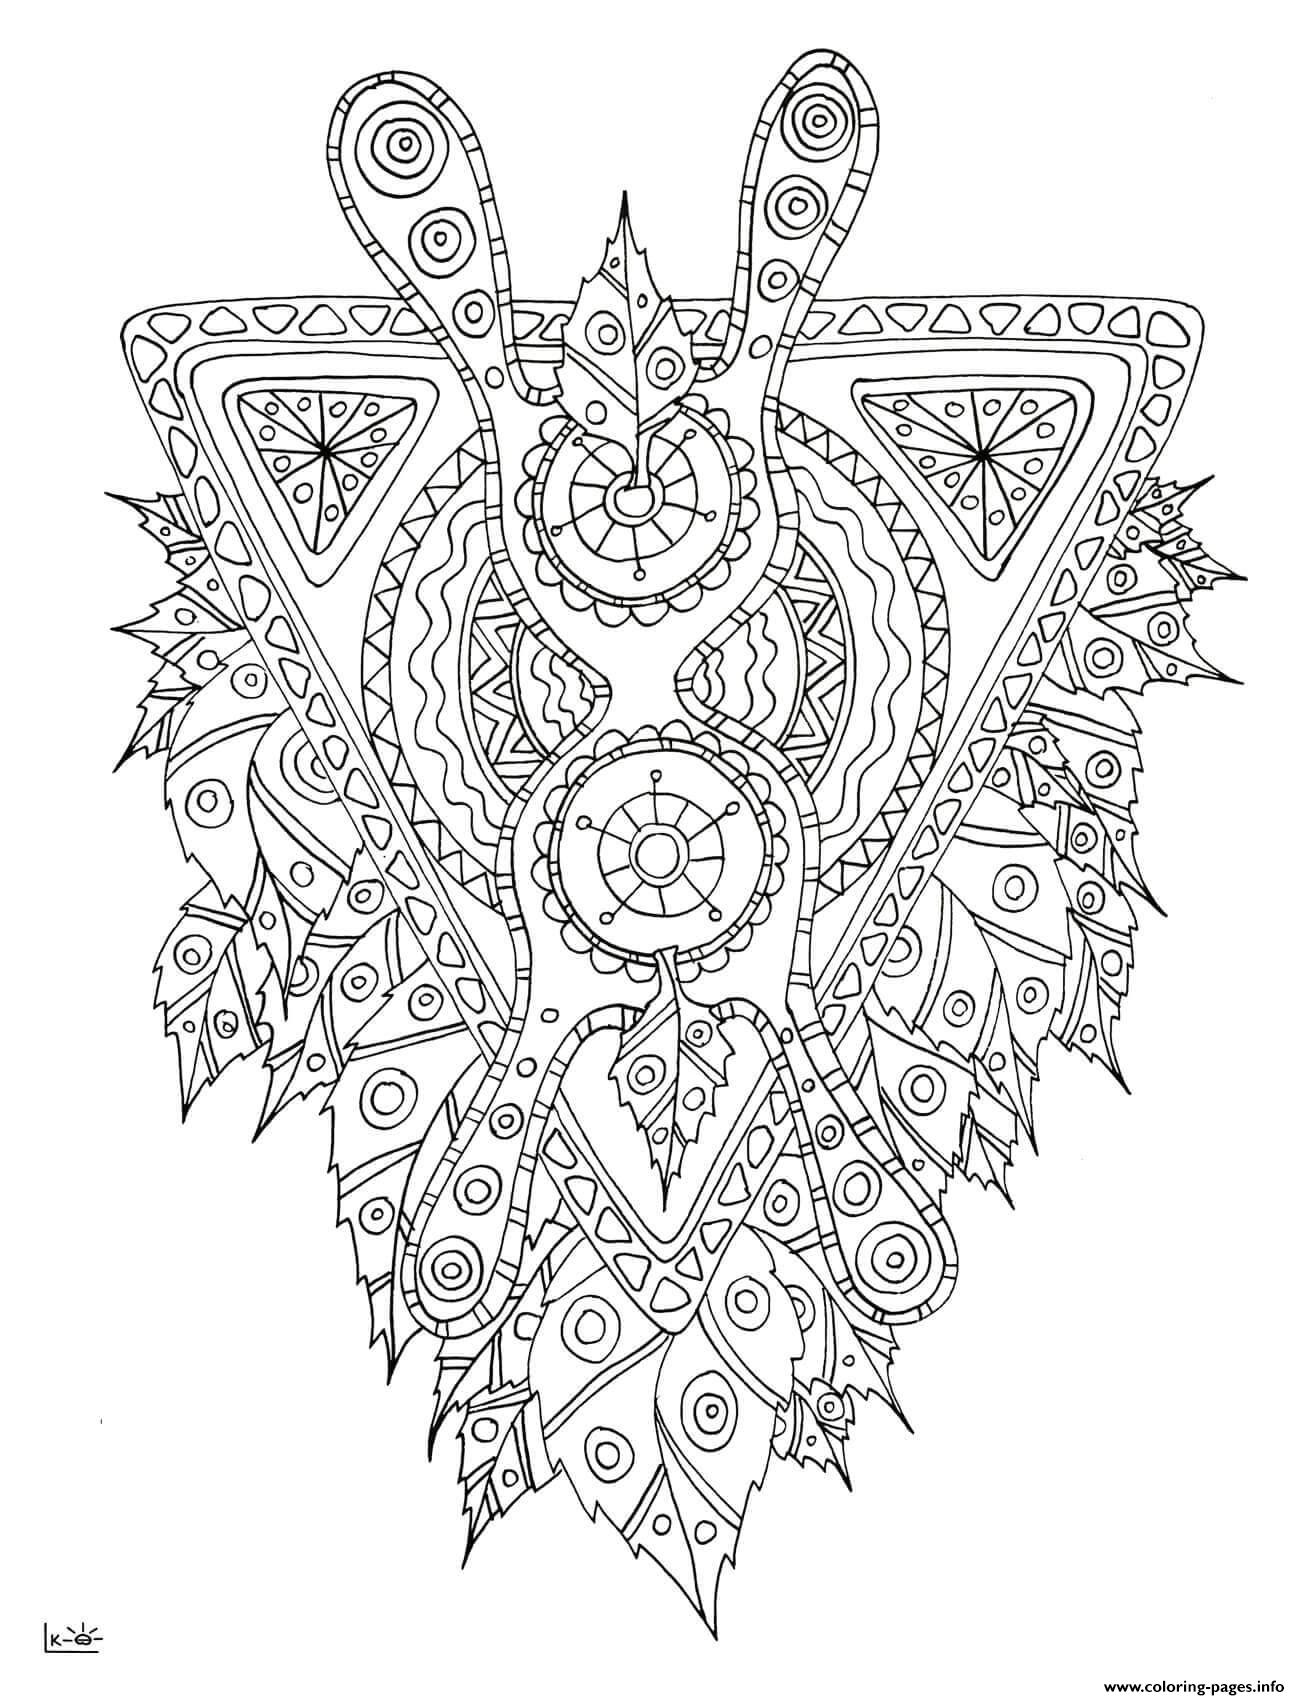 mythical creature with tribal pattern adults coloring pages